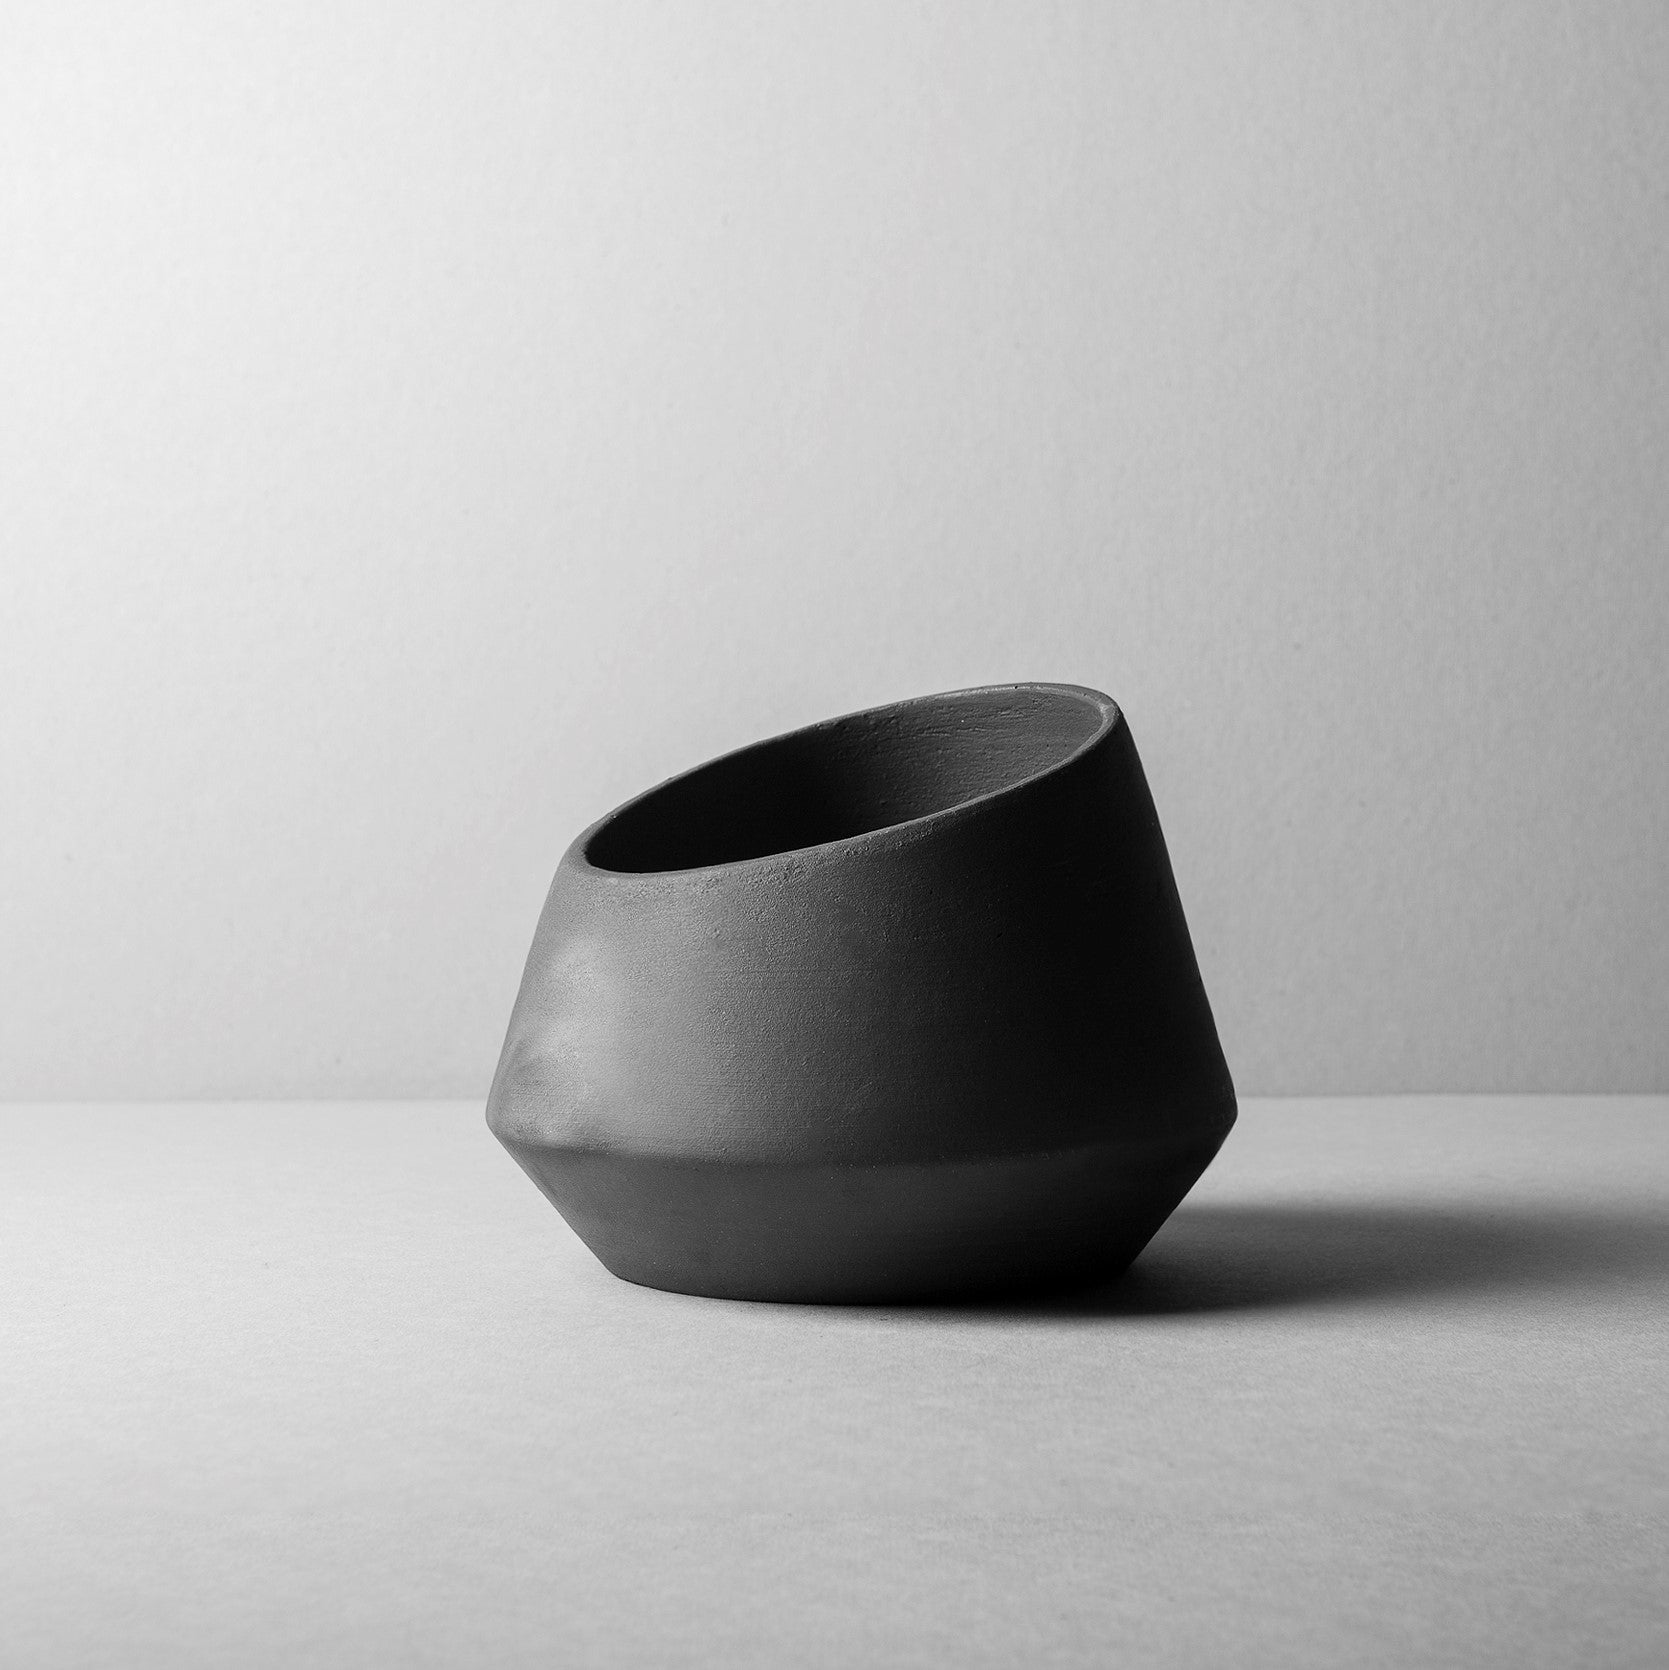 Rubble Interior Design Marketplace, Alguidar S Black Ceramic Pot by Bisarro Ceramics Designer